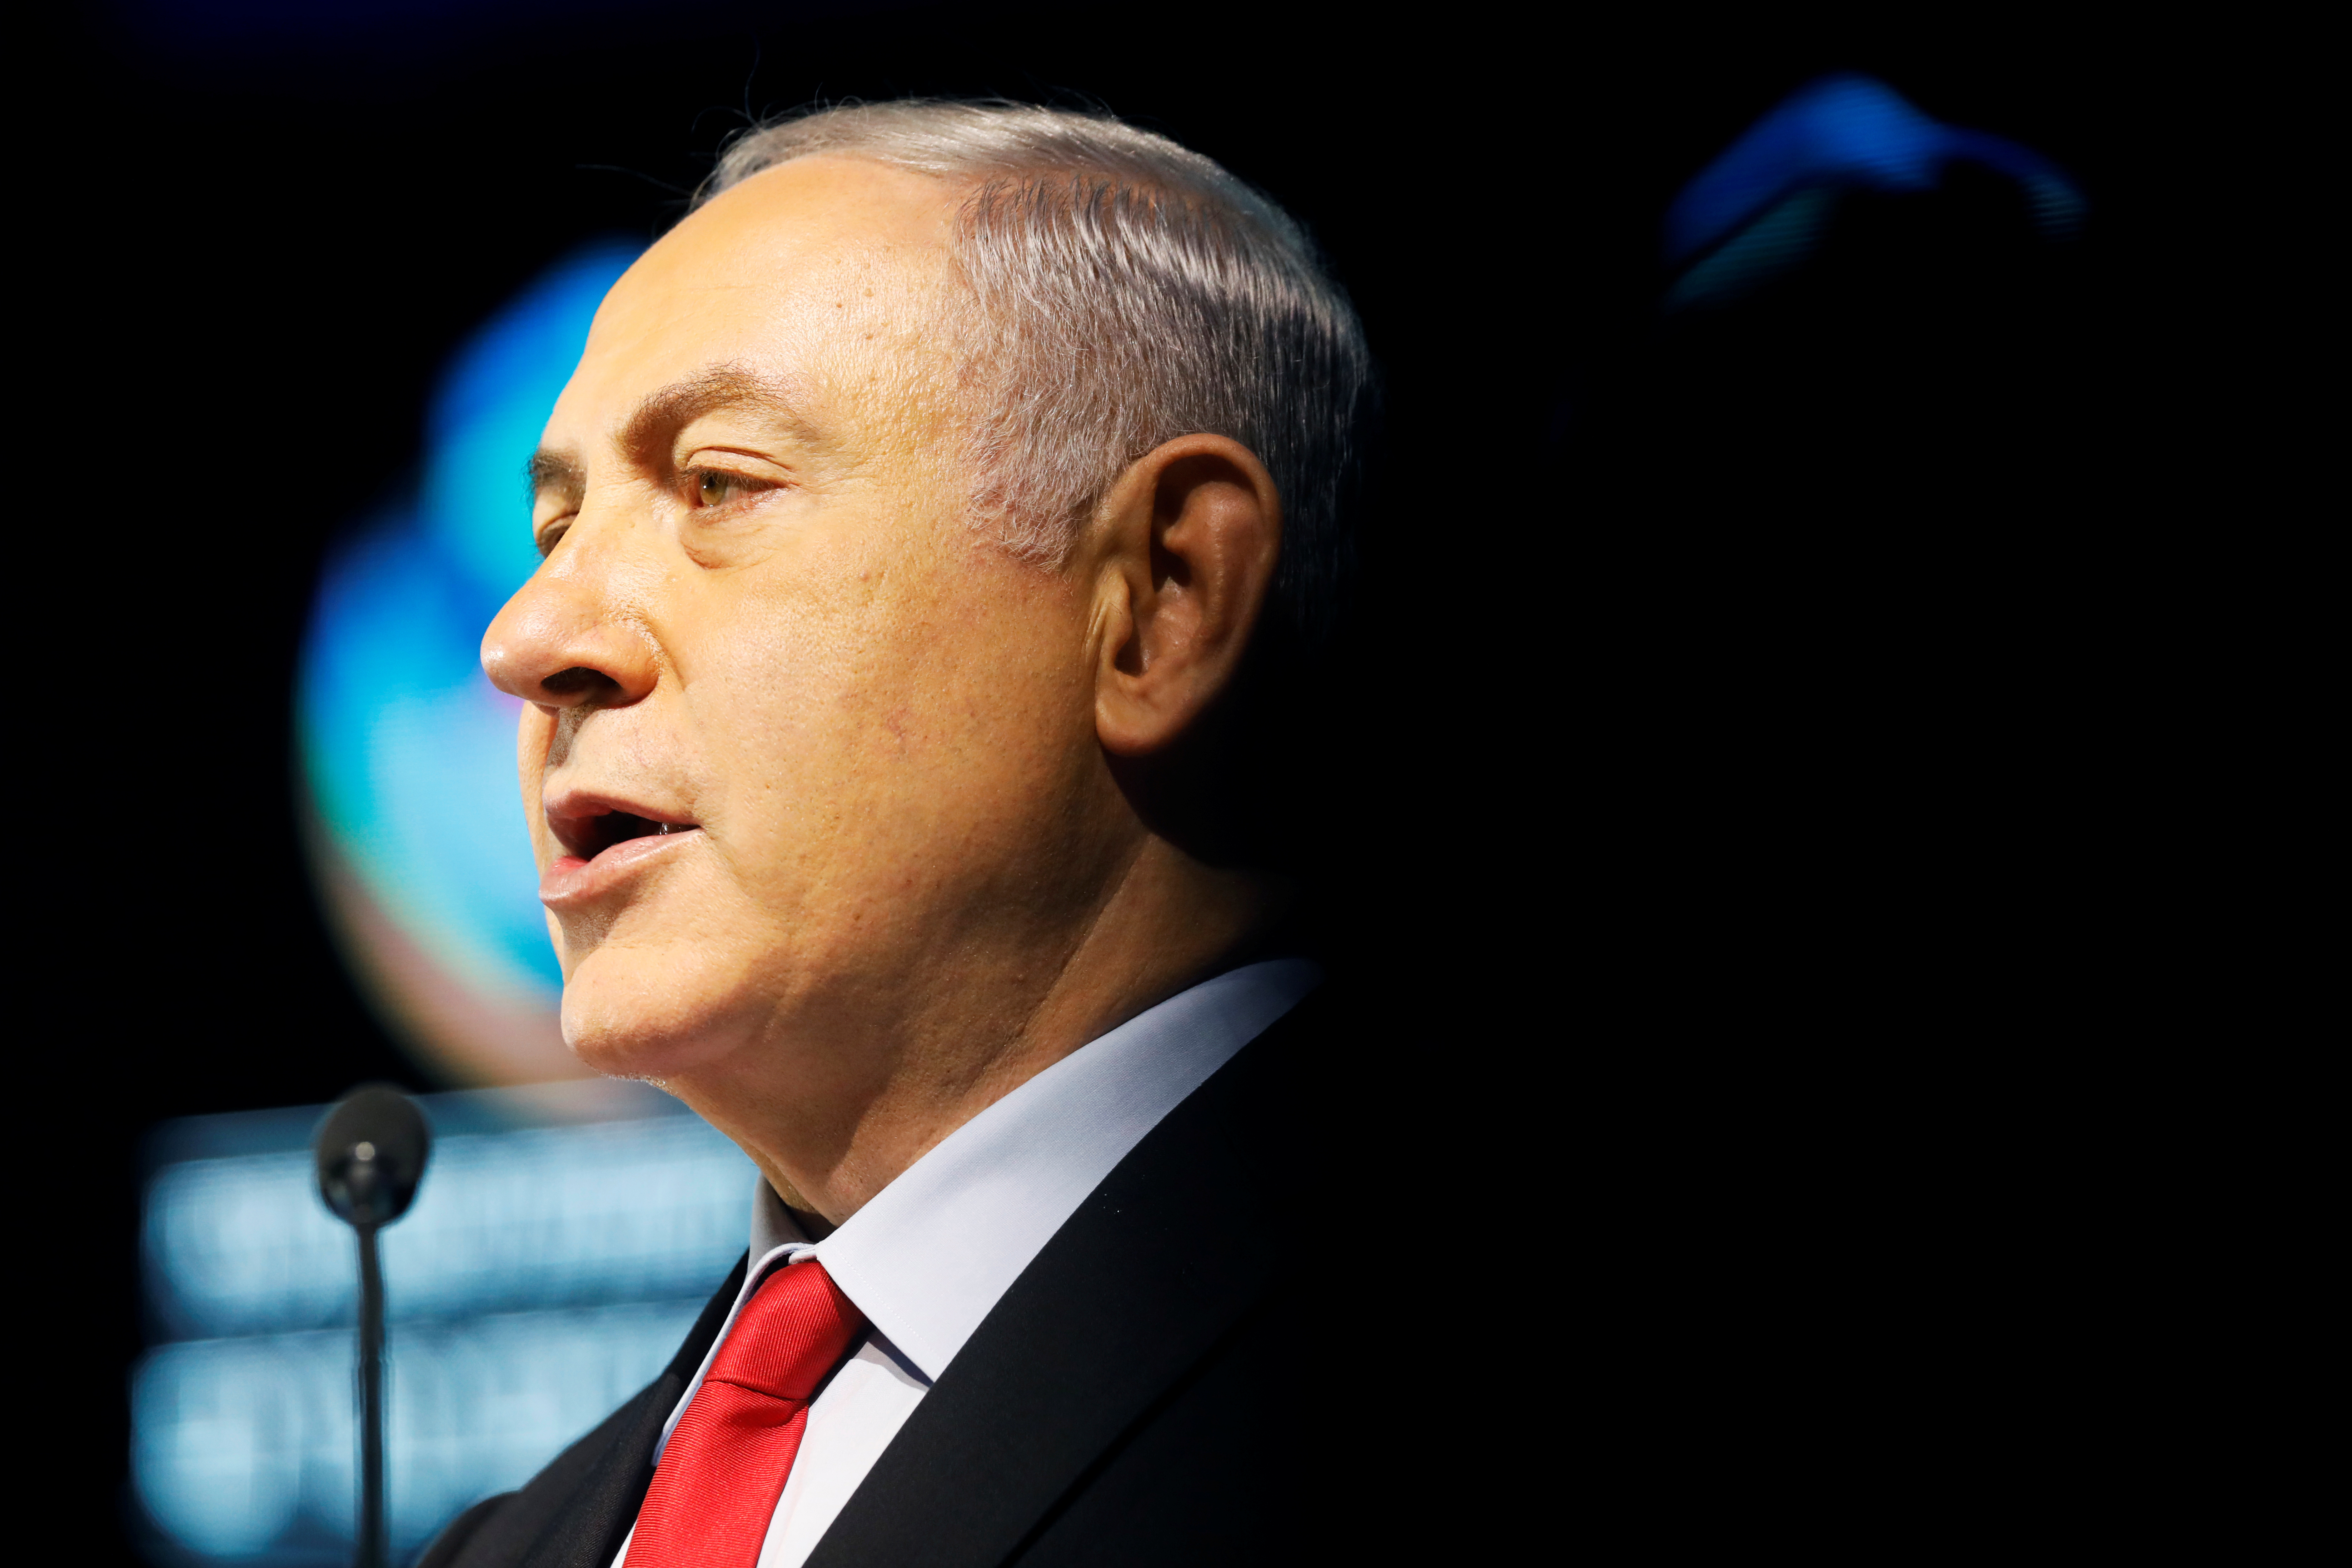 nationalinterest.org - Israel's Place in the Middle East Mayhem